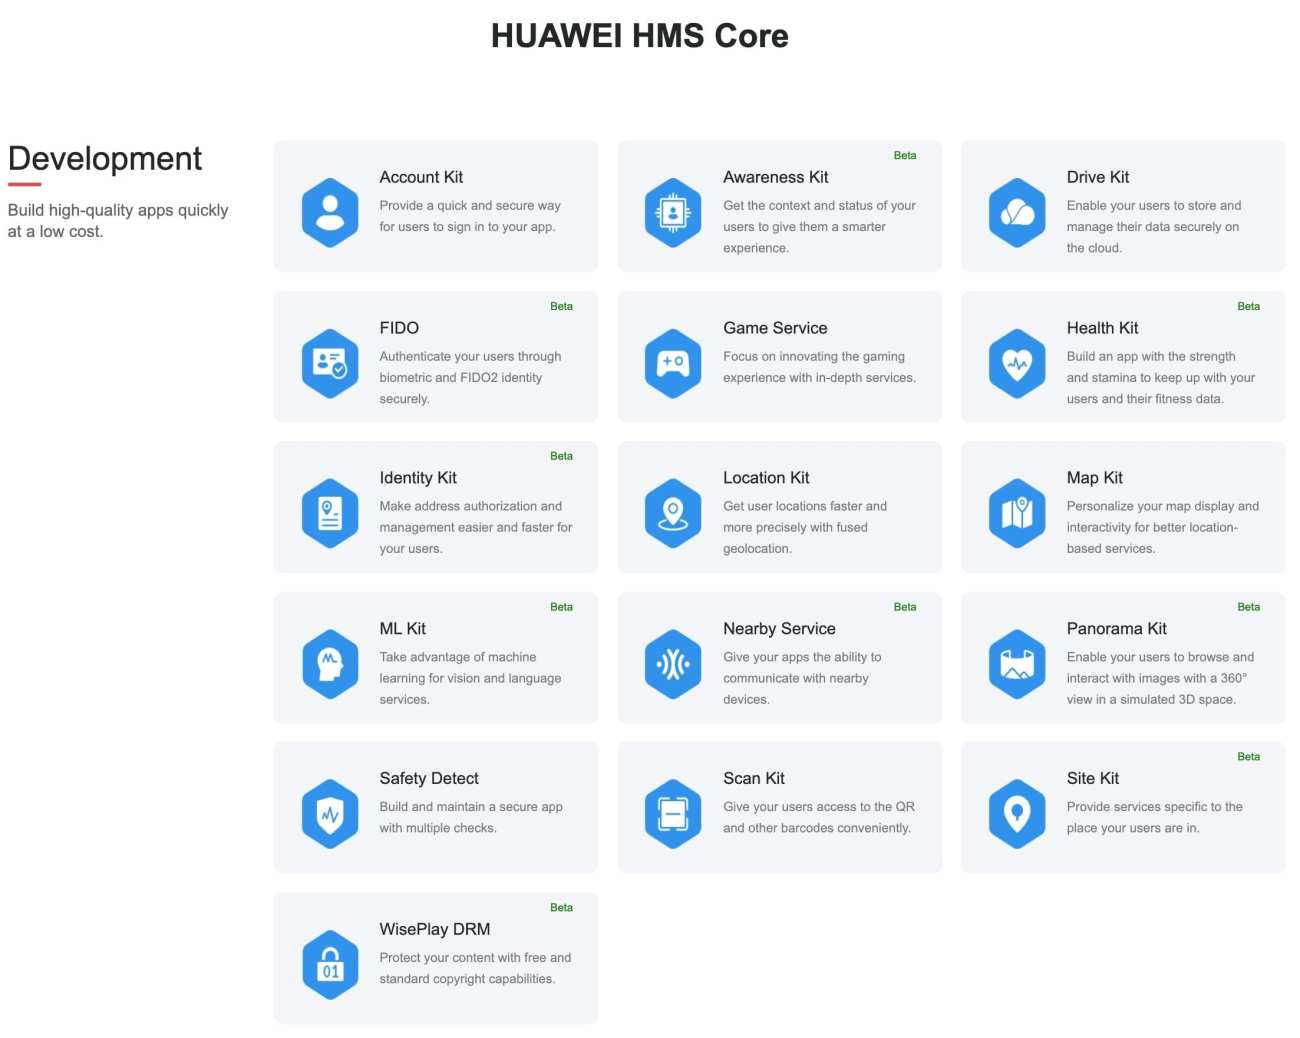 Huawei Mobile Services - HMS Core